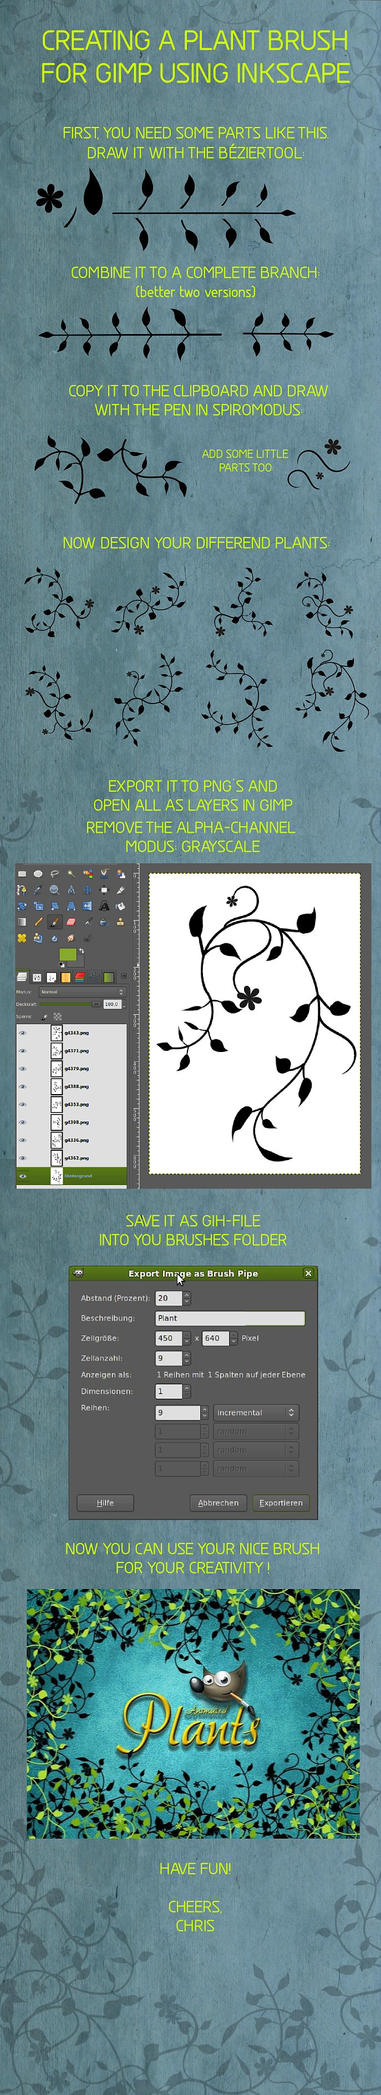 Inkscape GIMP-Brush Tutorial by Chrisdesign